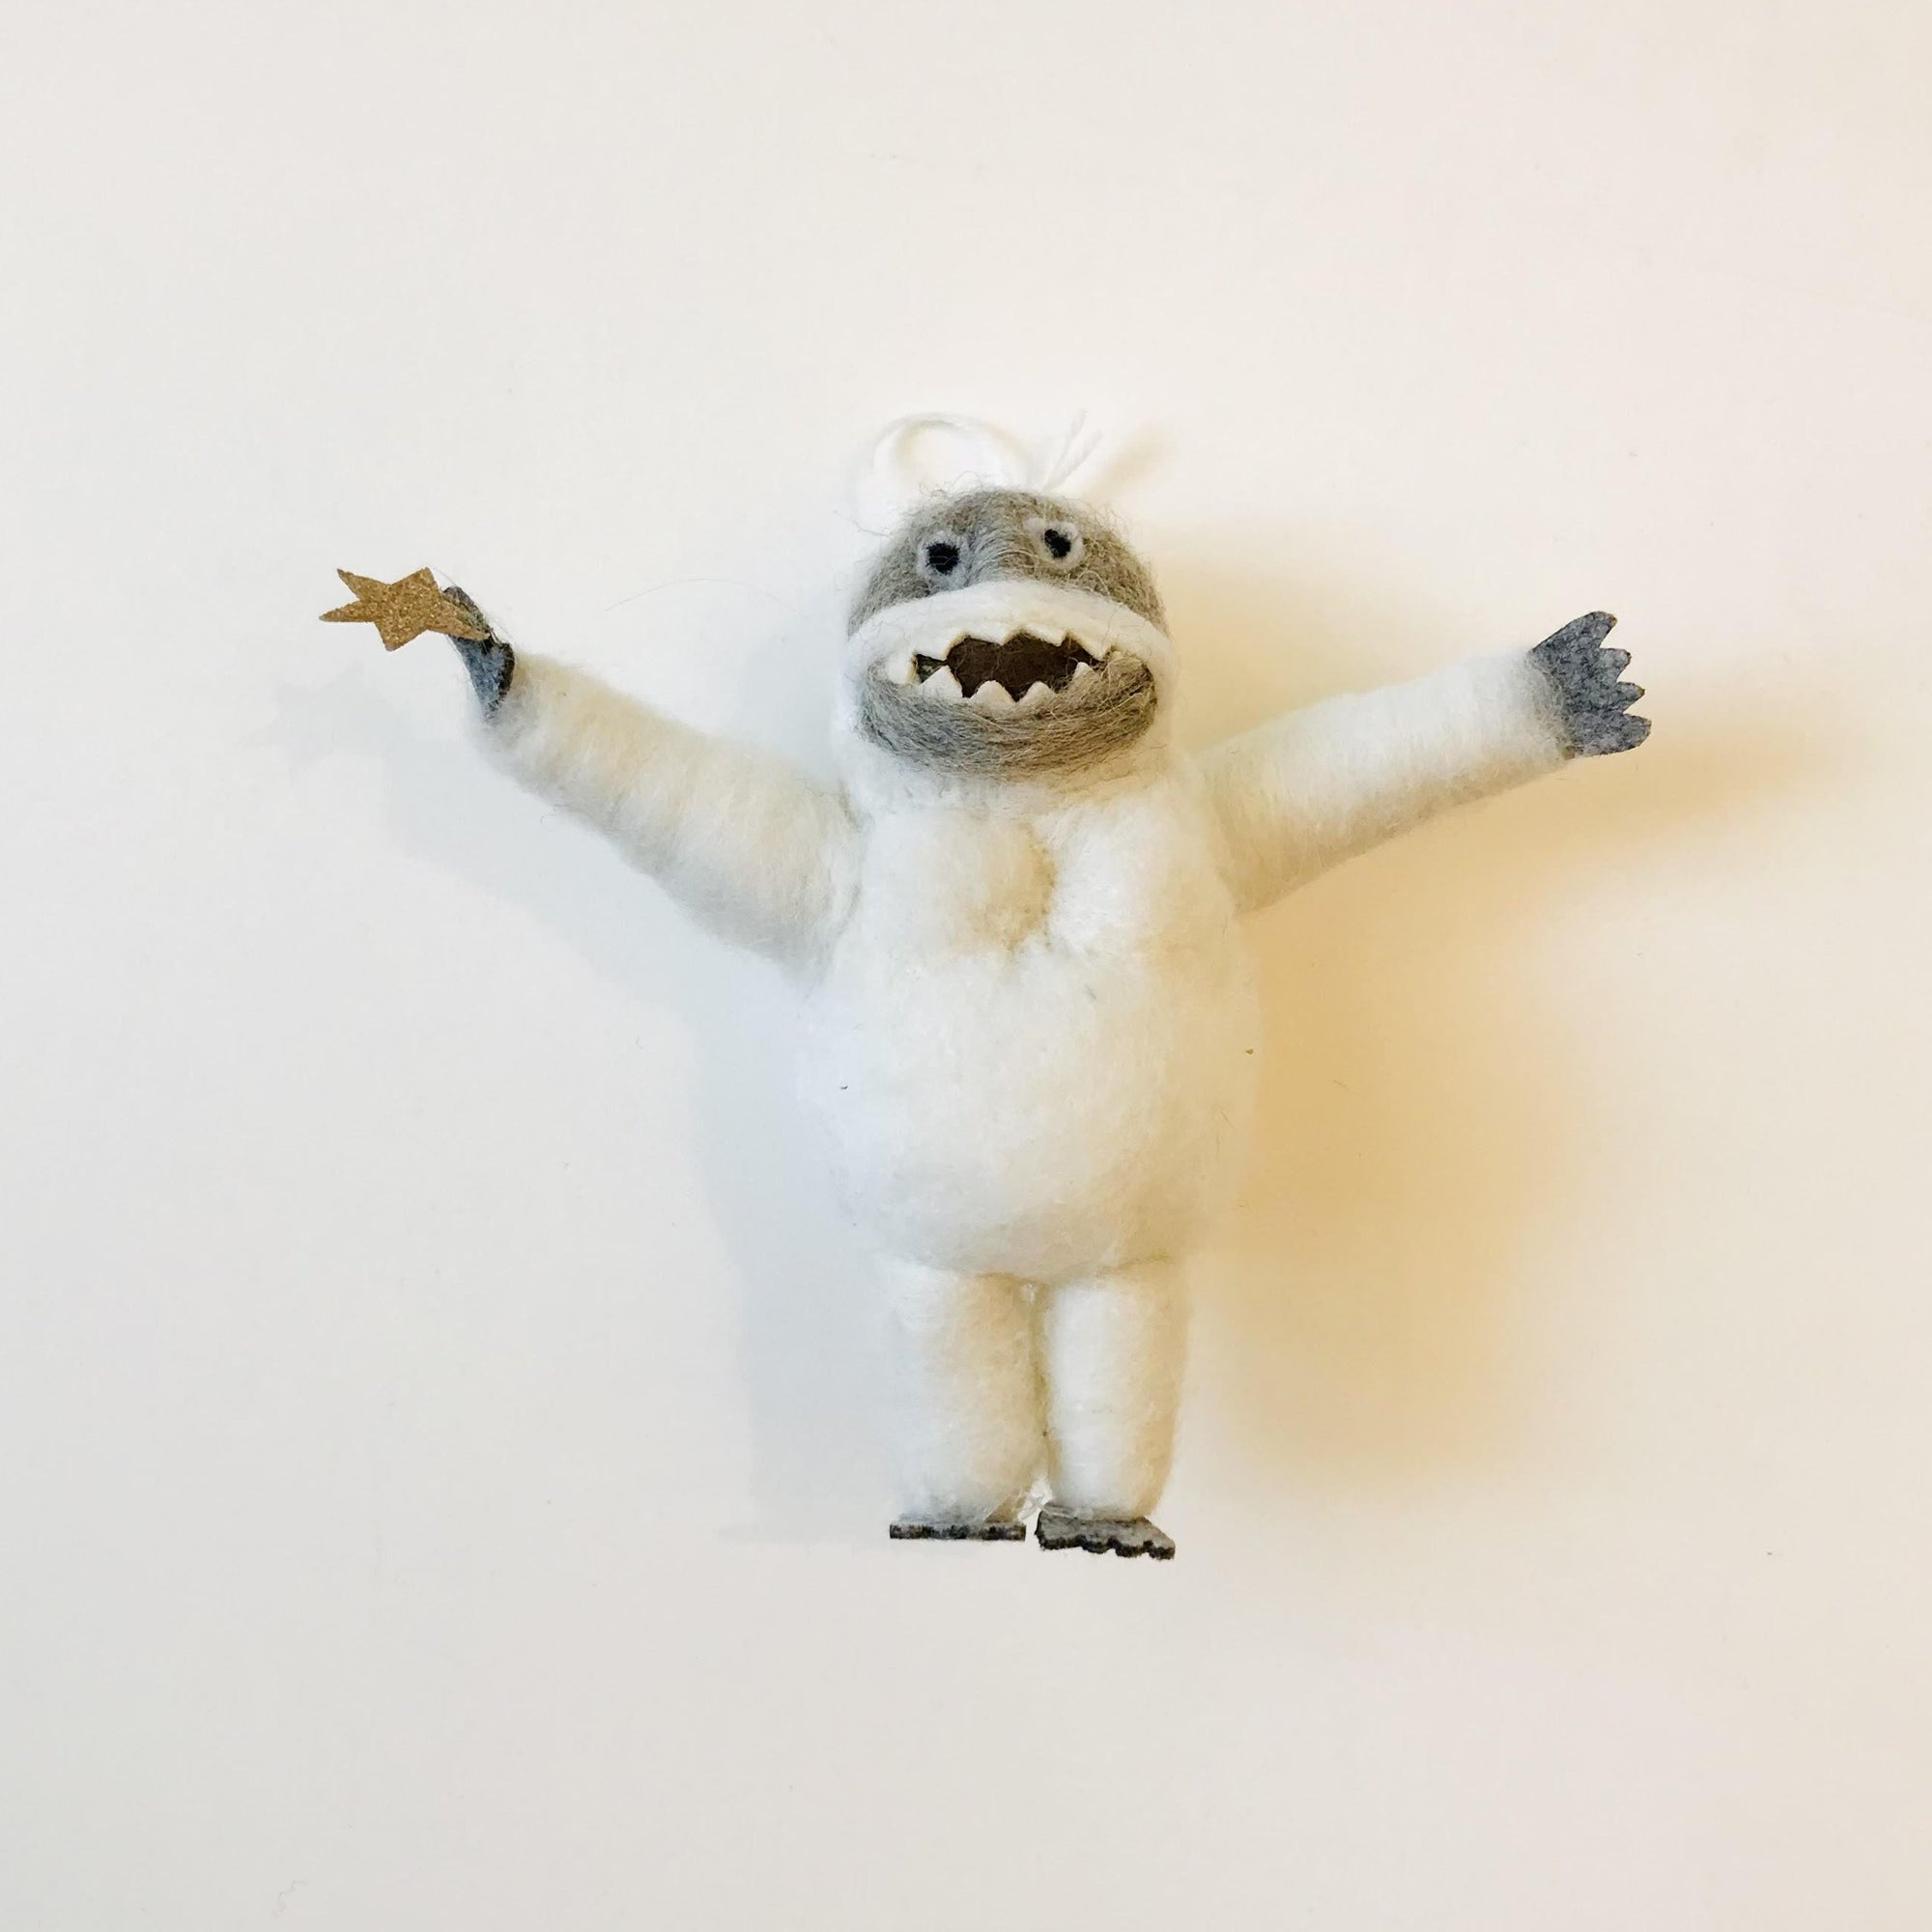 Cody Foster: Felted Abominable Snowman Ornament